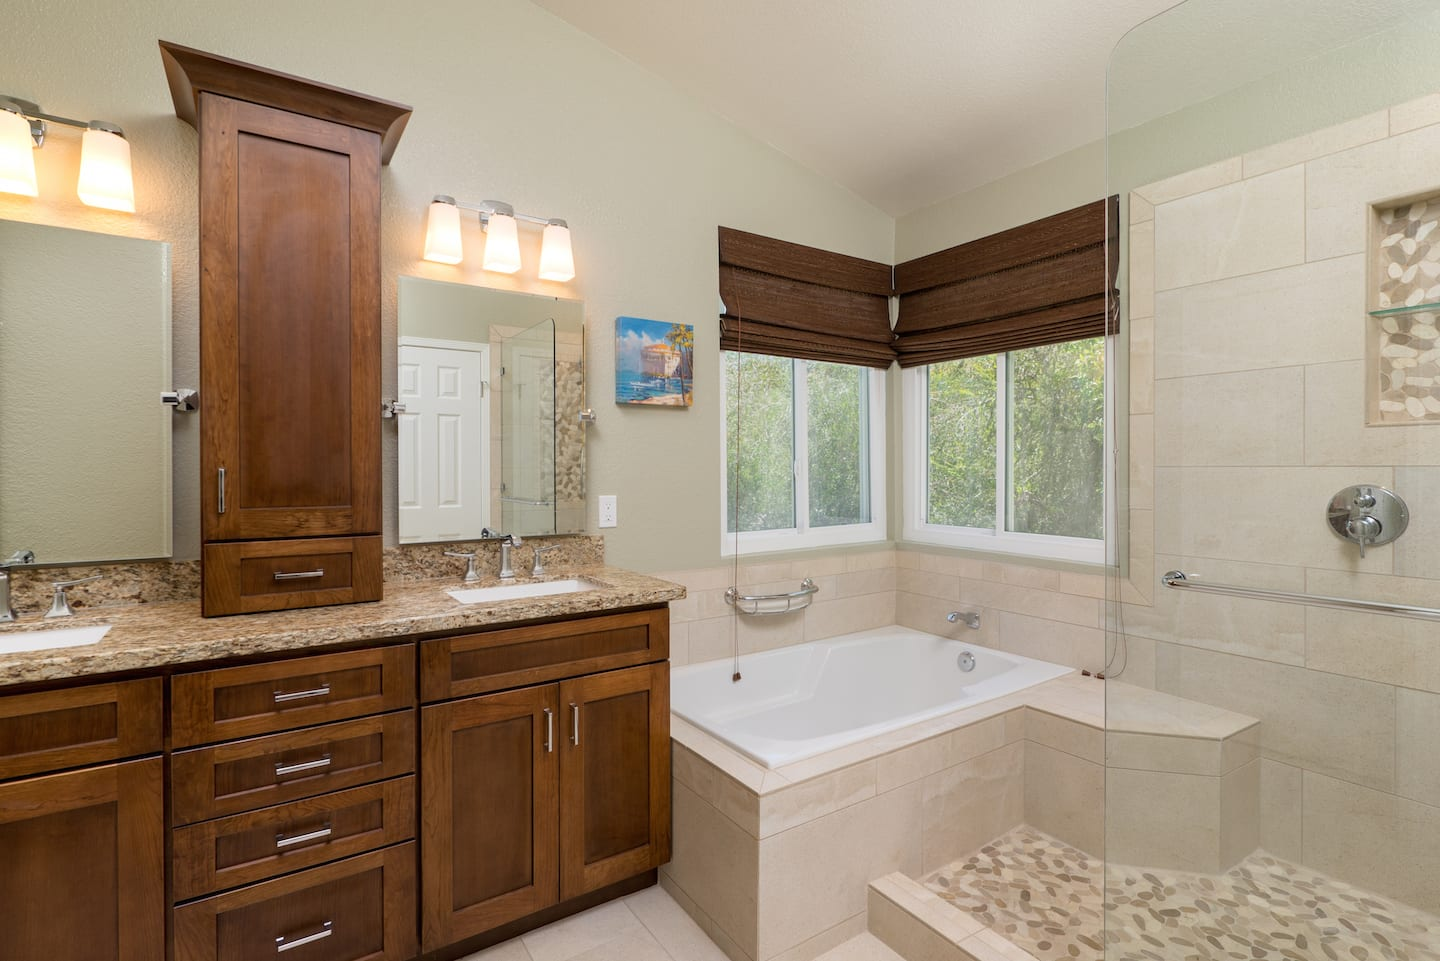 Remodel Bathroom Bathroom Remodeling  Planning And Hiring  Angie's List